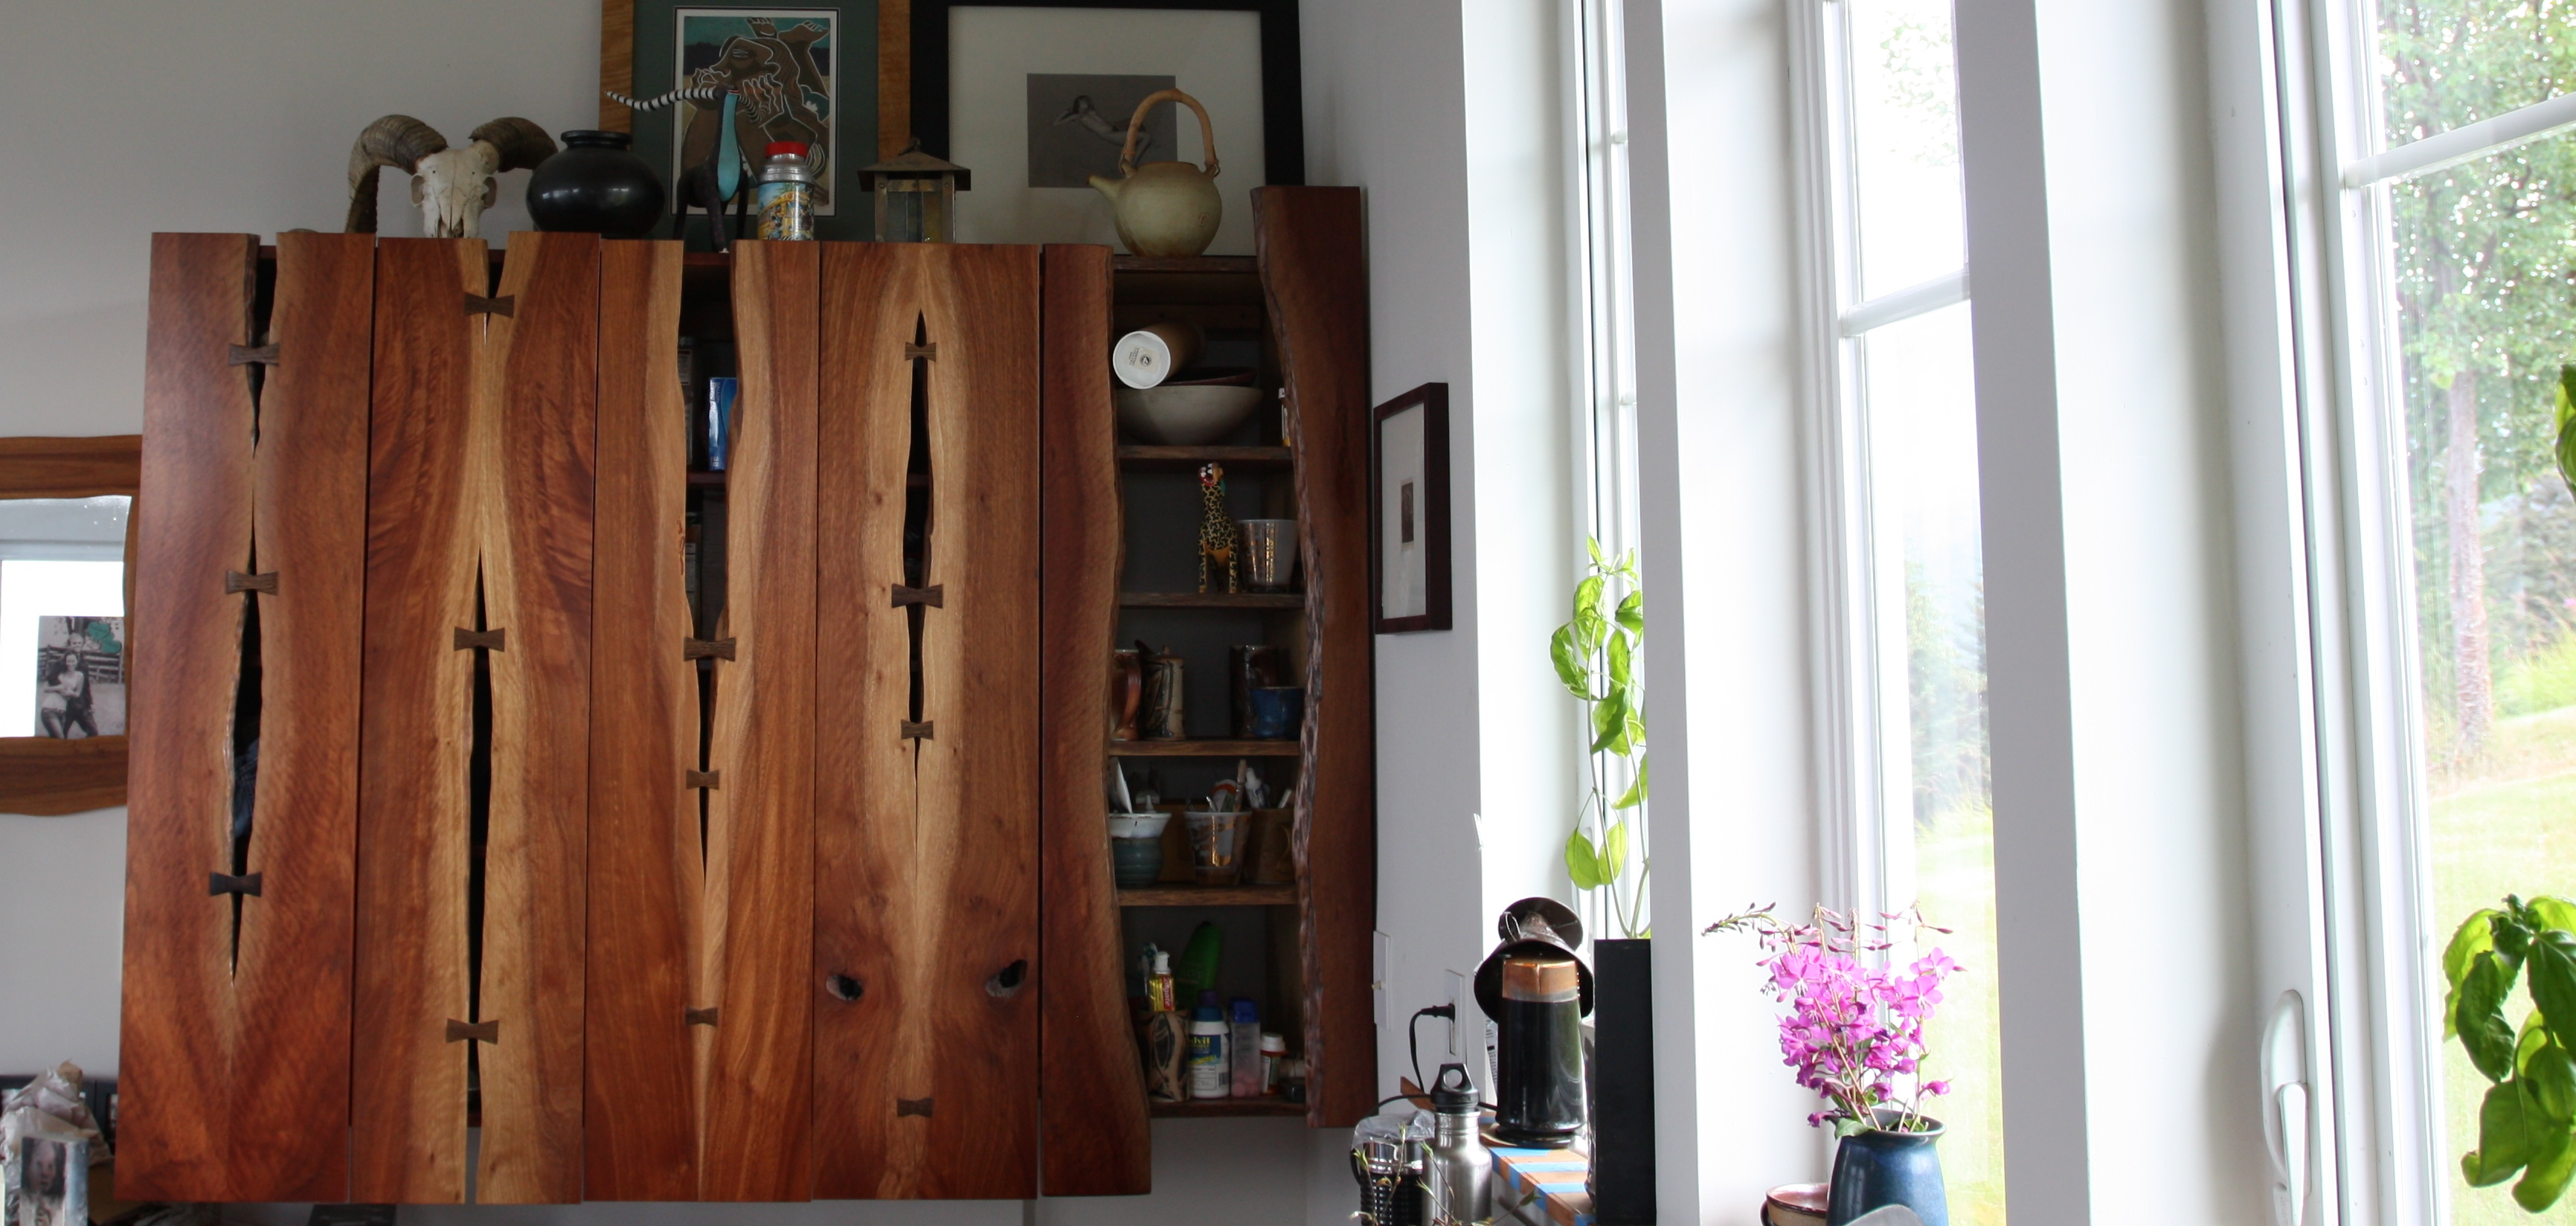 Steve made these cabinets out of salvaged wood.  I've never seen anything like them, and my photo does not do them justice.